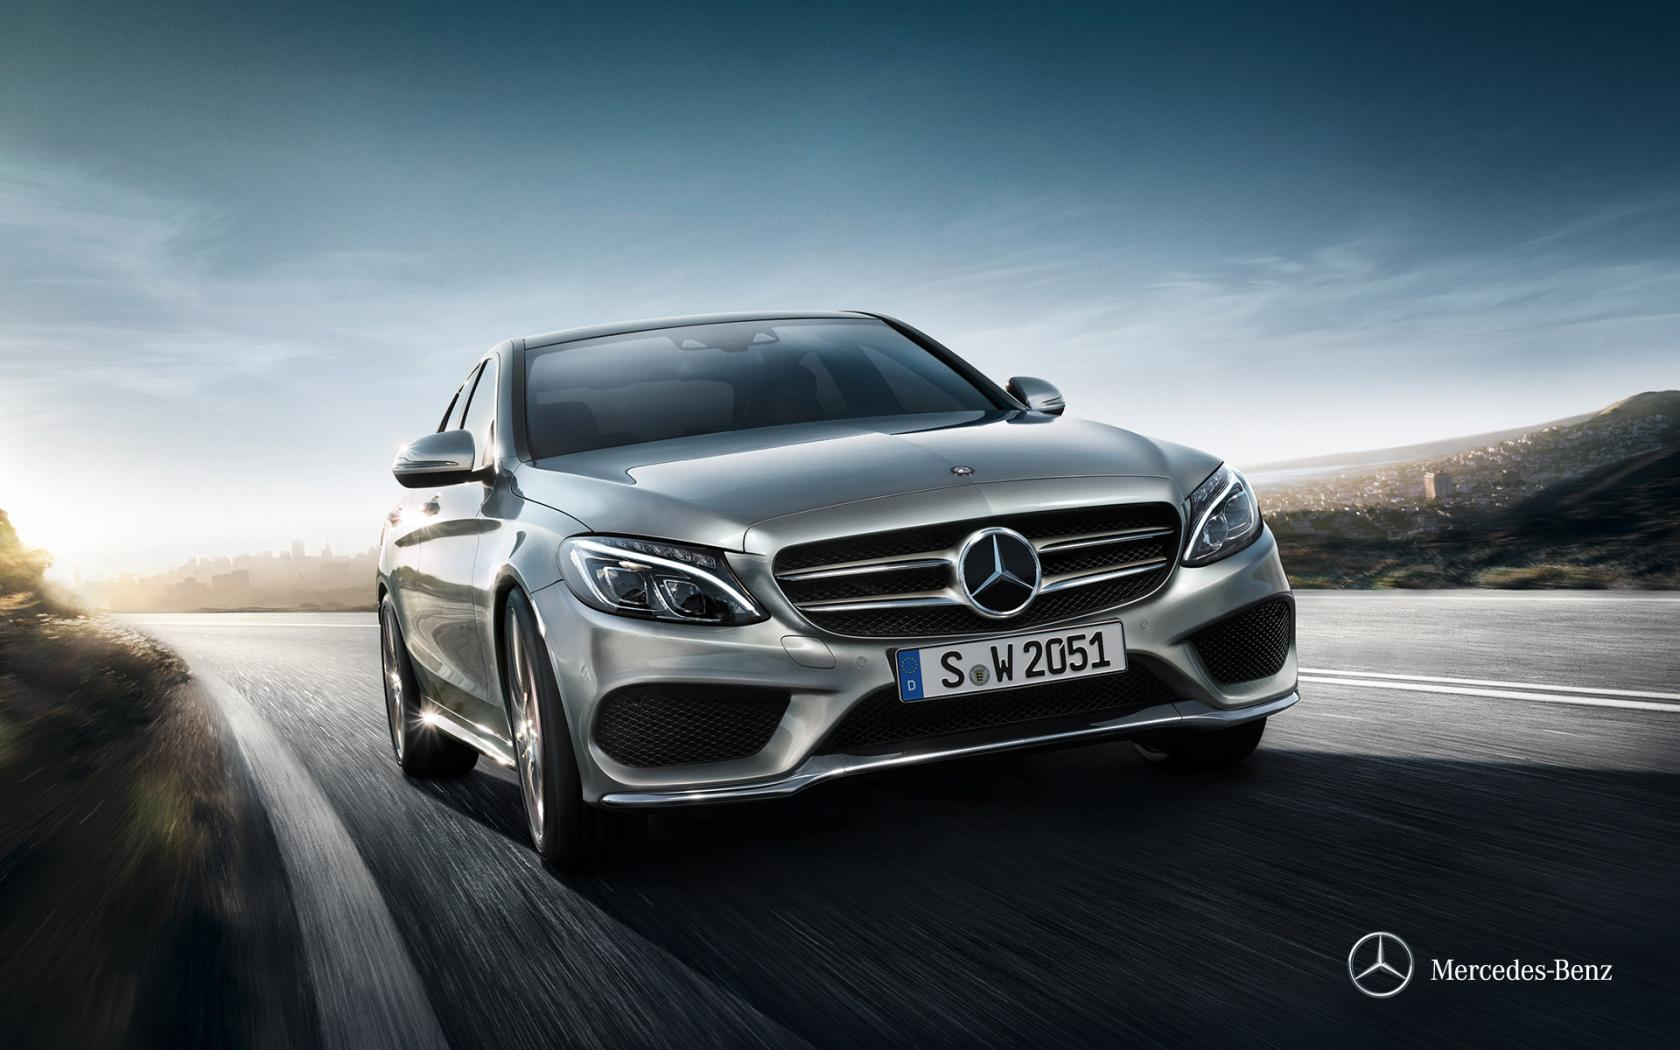 mercedes-benz-c-class-w205_wallpaper_01_1920x1200_11-2013.jpeg